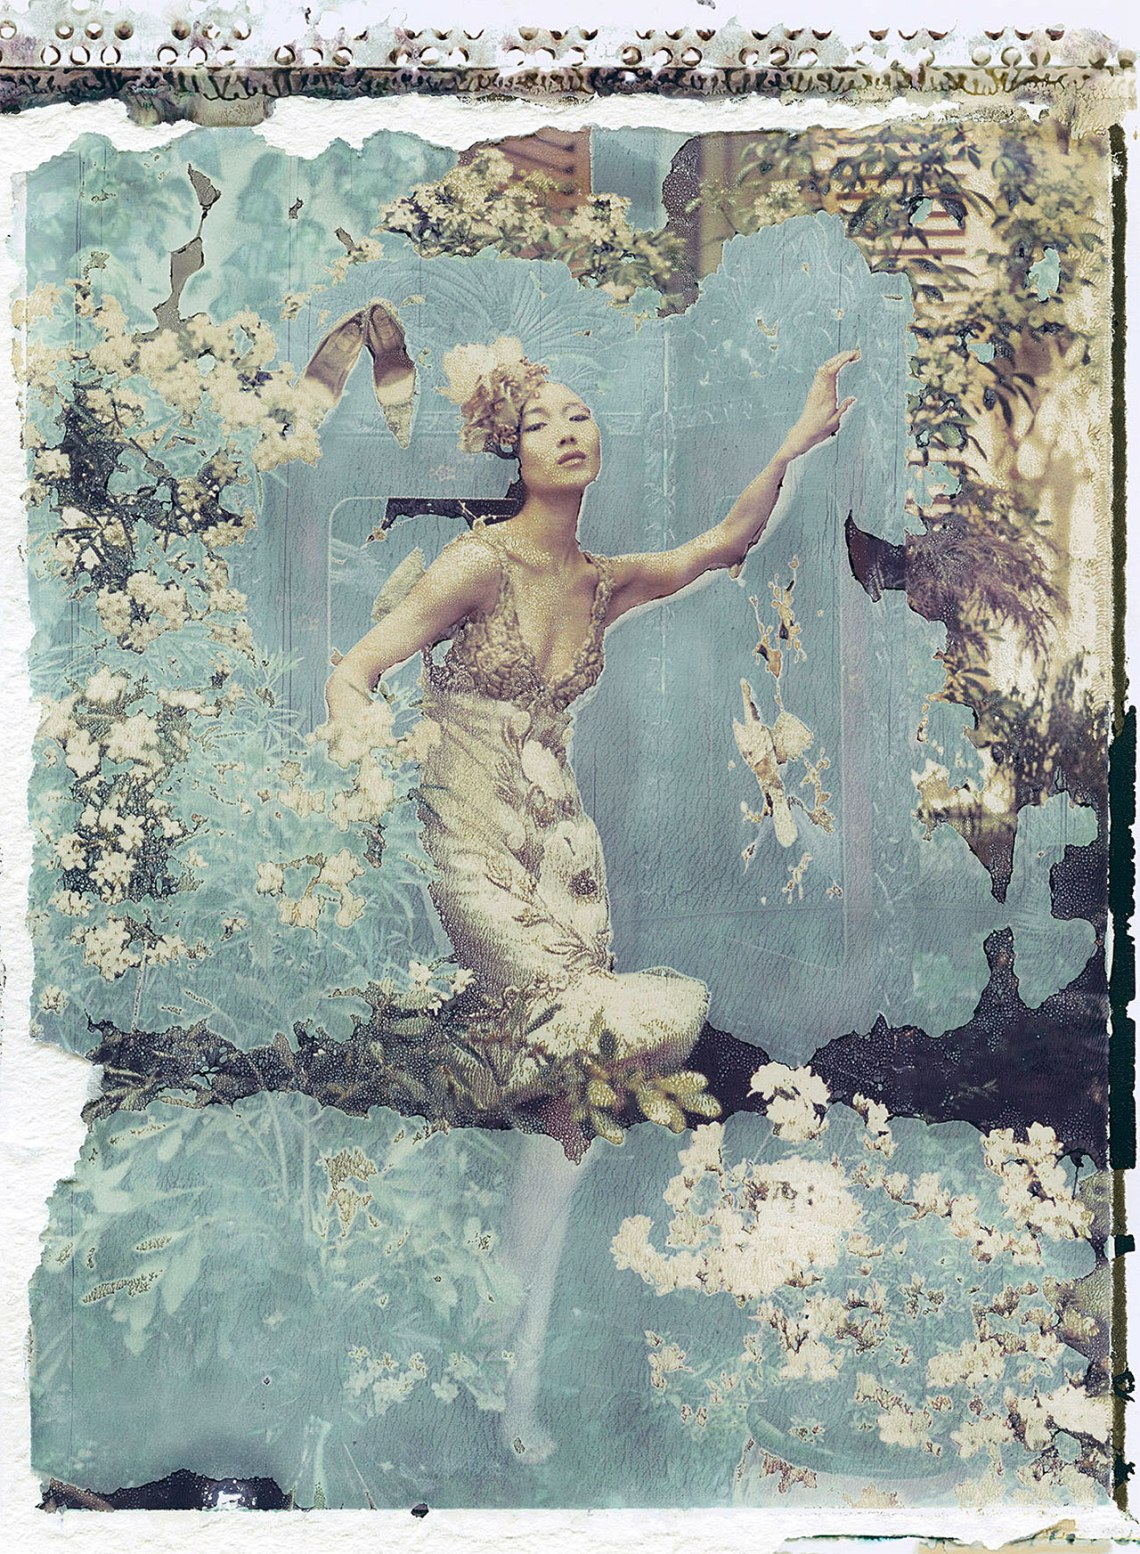 f4_an_ordinary_day_valentino_hc_summer_2008_no20_atelier_d_artiste_cite_jandelle_paris_color_print_from_original_polaroid_cathleen_naundorf_at_edwynn_houk_gallery_yatzer